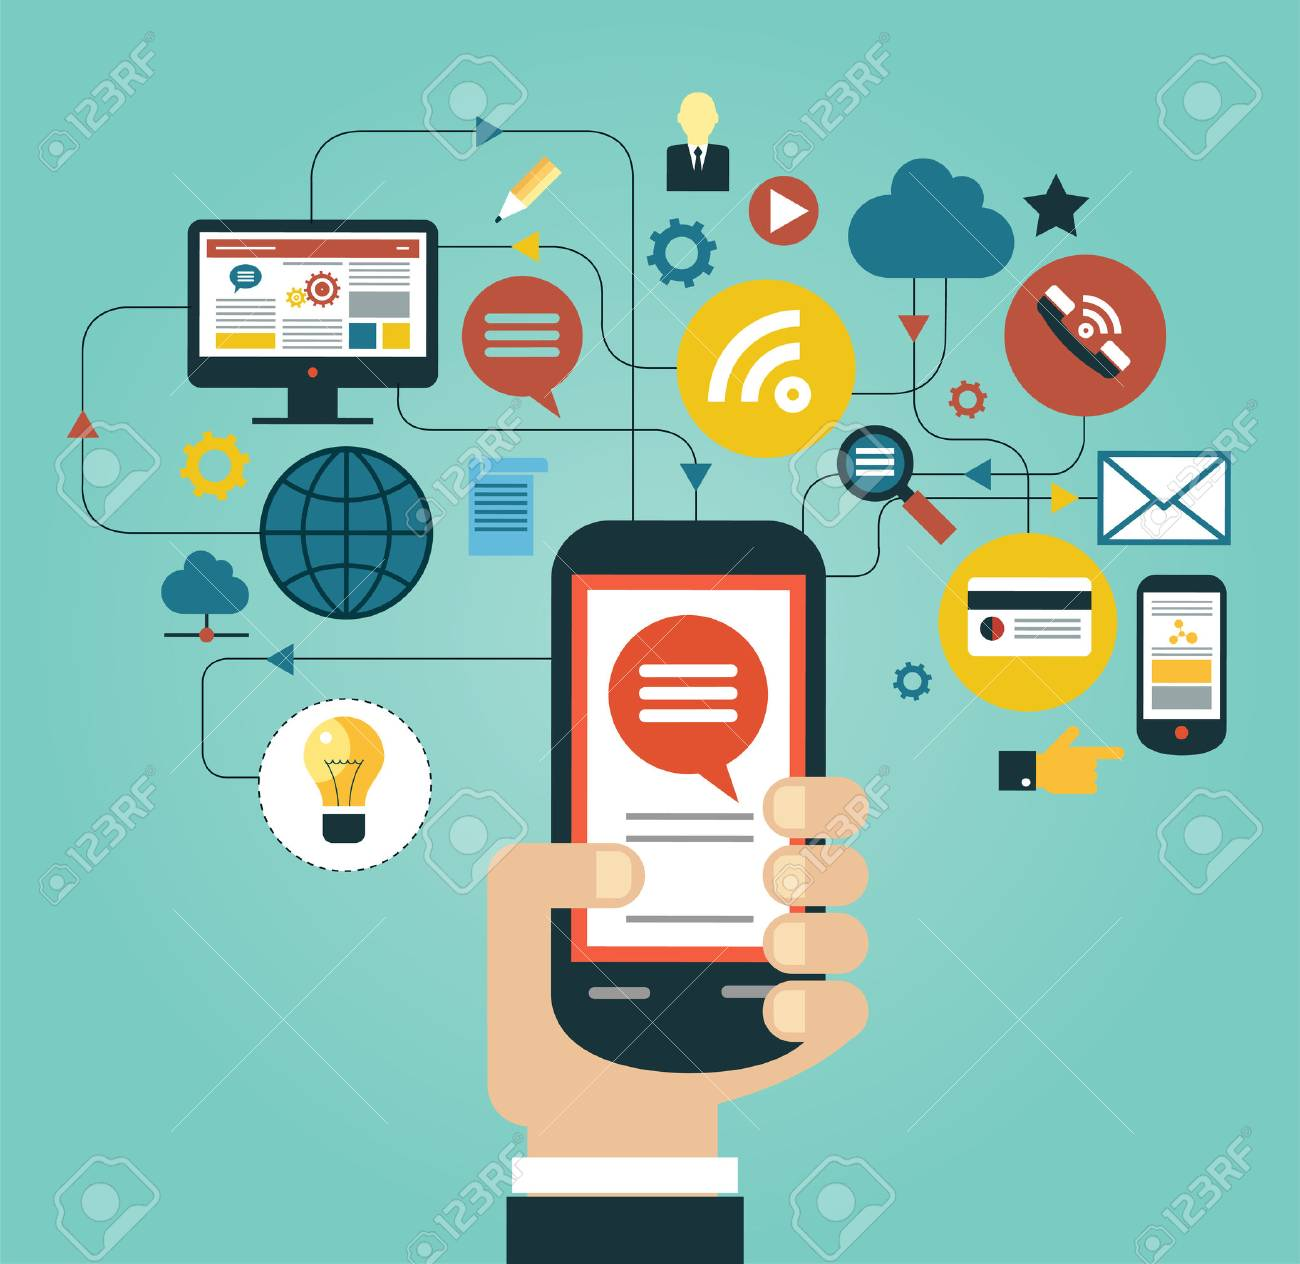 Hand of the person with the phone surrounded by icons. Concept of communication in the network Standard-Bild - 46874147